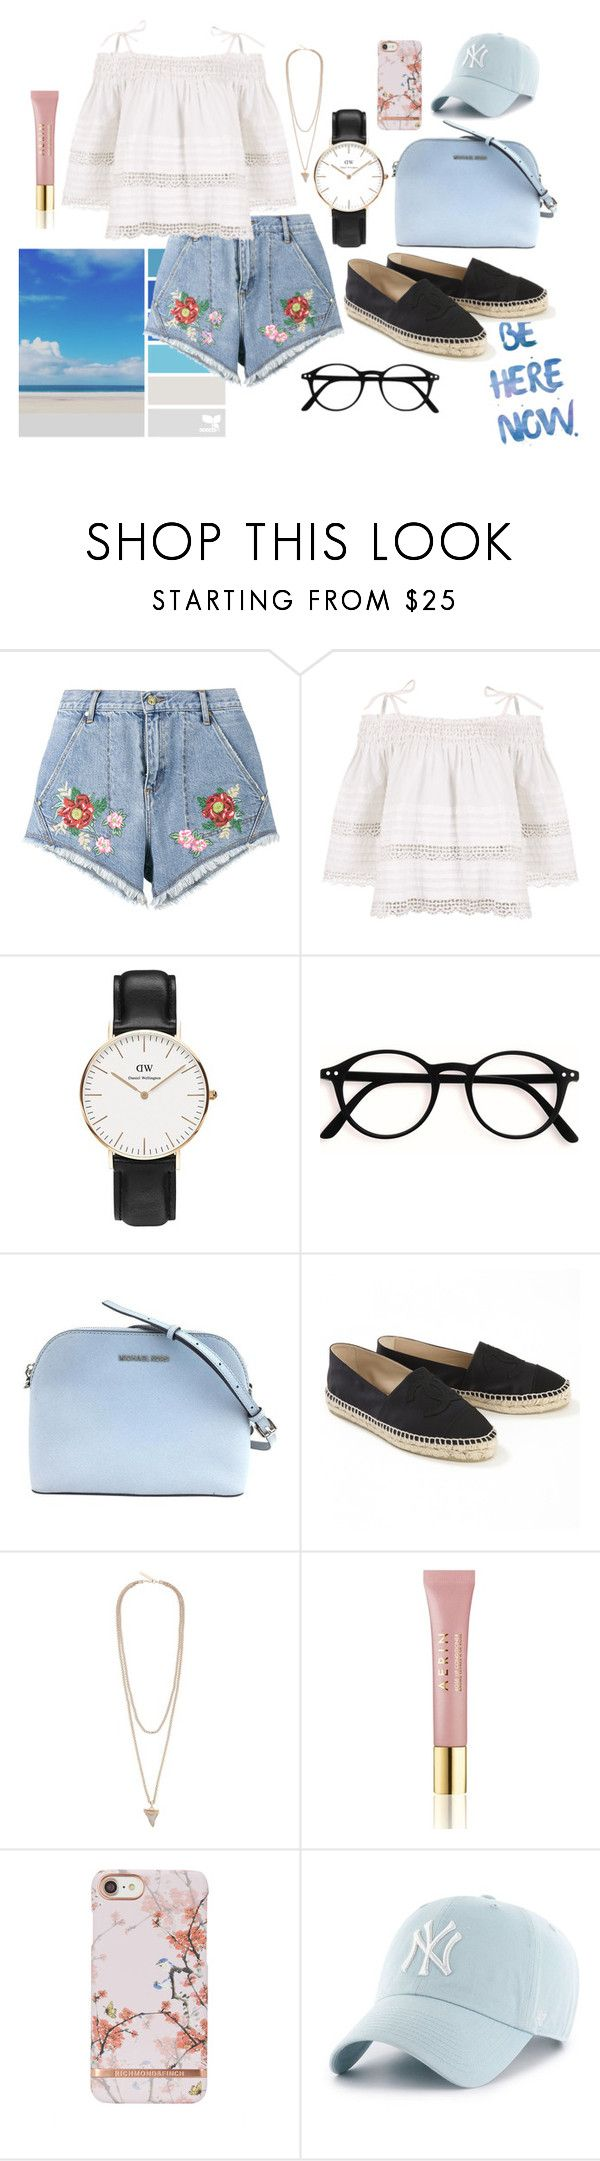 """""""17.21"""" by nicaa on Polyvore featuring moda, House of Holland, Chanel, Givenchy, AERIN e '47 Brand"""